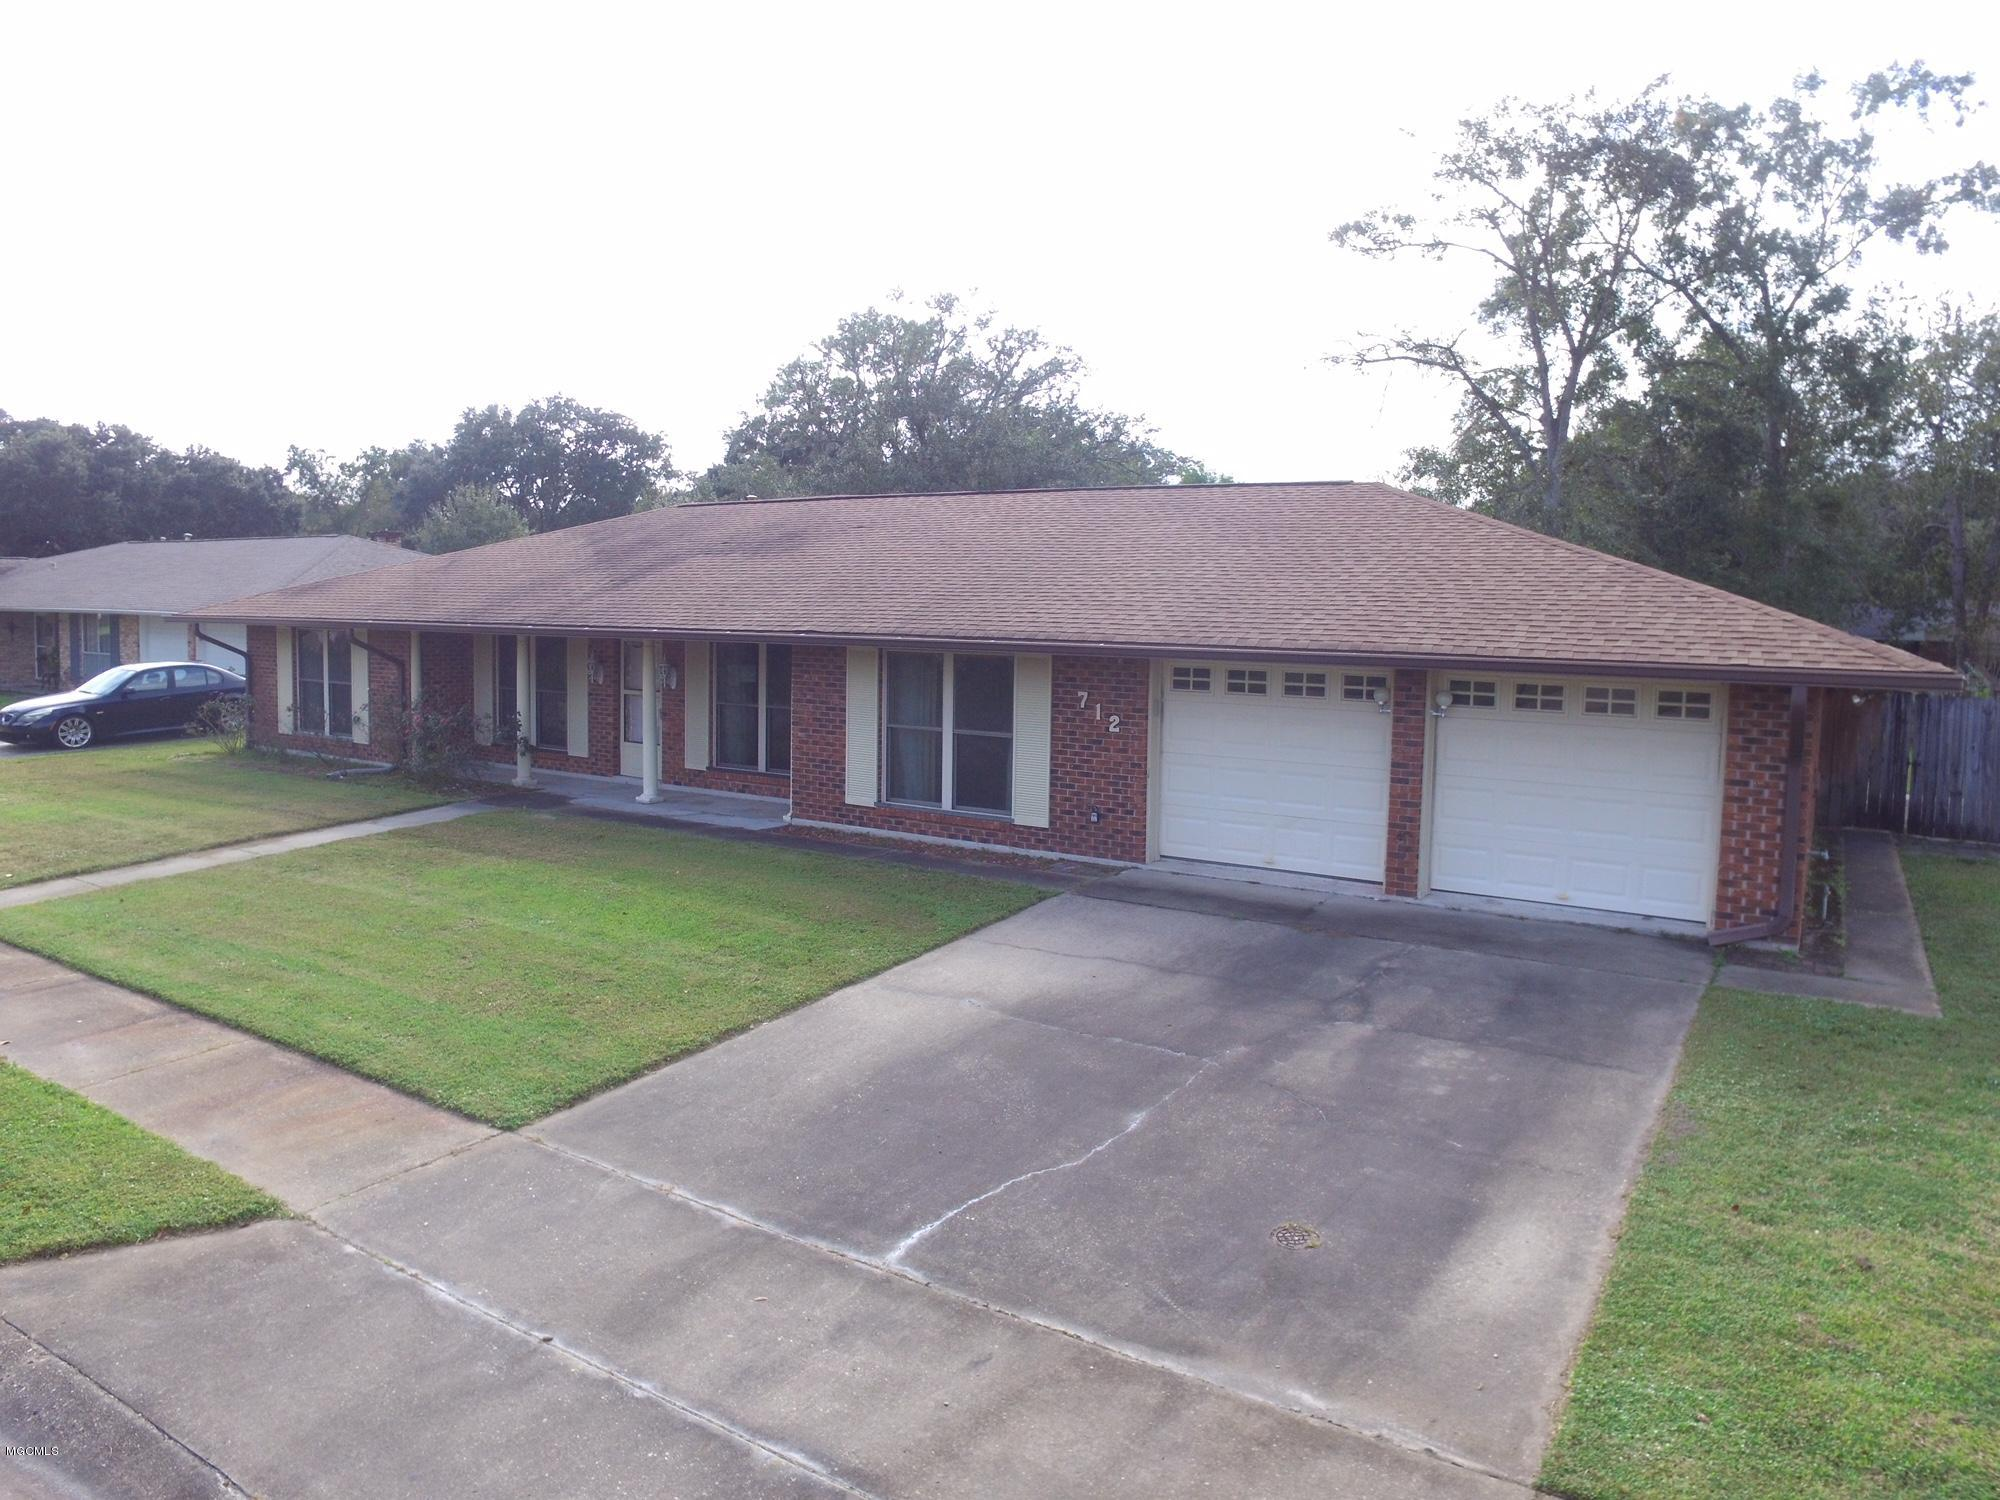 712 Dogwood Dr,Long Beach,Mississippi 39560,4 Bedrooms Bedrooms,2 BathroomsBathrooms,Single-family,Dogwood,340147